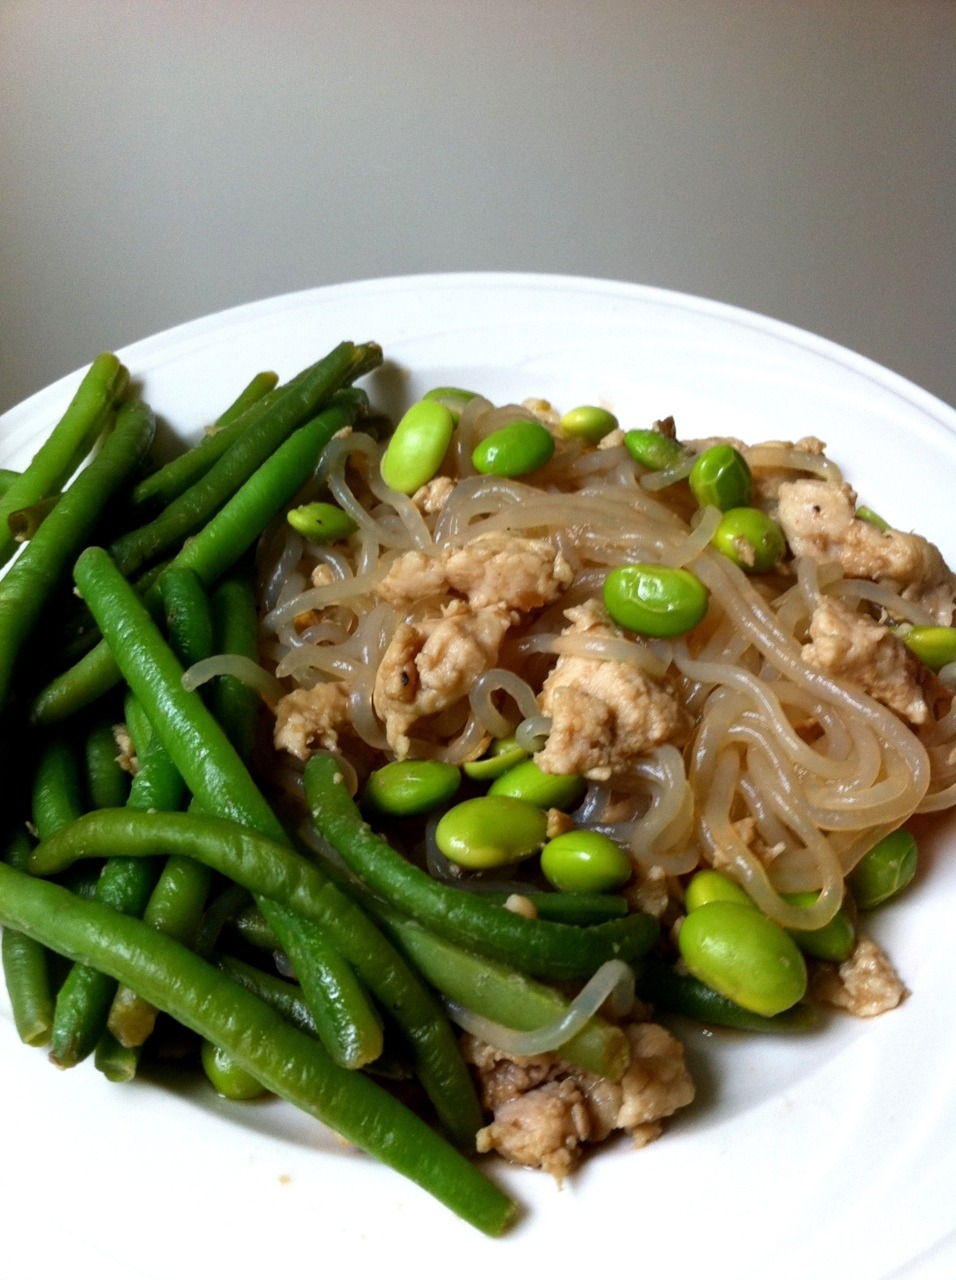 Miracle Noodle Teriyaki Green Beans, Edamame, & Pork Dish Oh so yummy! This was SUPER FAST to make. I think it literally took like 5 minutes to throw this whole thing together. I spent more time taking pictures than cooking. I should win an award for fastest healthy chef ever. INGREDIENTS: *1 serving french cut green beans (Trader Joes) or you can use any green bean *1 serving edamame, shelled (Trader Joes) *3-4oz of ground meat (I used pork because I had that laying around) *1 TBS Teriyaki sauce or to taste *1 packet of Zero Calorie Shirataki Miracle Noodle DIRECTIONS: 1. Drain your Miracle Noodles into a sifter and run under warm water until fishy smell disappears. (Don't worry about the smell, it is nothing harmful!) Let sit and dry while cooking other ingredients. 2. Throw the frozen green beans and edamame into a big frying pan. Once halfway cooked through, throw in your ground meat. Push around for a little bit then add the terayaki sauce. 3. Once the meat is cooked through, dump Miracle Noodles on! Taste. Add soy sauce or more teriyaki to your preference.  So done! It tasted great. Most of the time, I don't plan my meals and just throw together whatever I have laying around. Edamame cooks beautifully and tastes very buttery. Tons of protein too in those little guys! The answer to a quick healthy meal is some nutritiously fresh ingredients and a happy sautee-er.  Enjoy! And if you have any questions on what Miracle Noodle is, read my post here on what it's made out of and why I love it. <3 Cassey